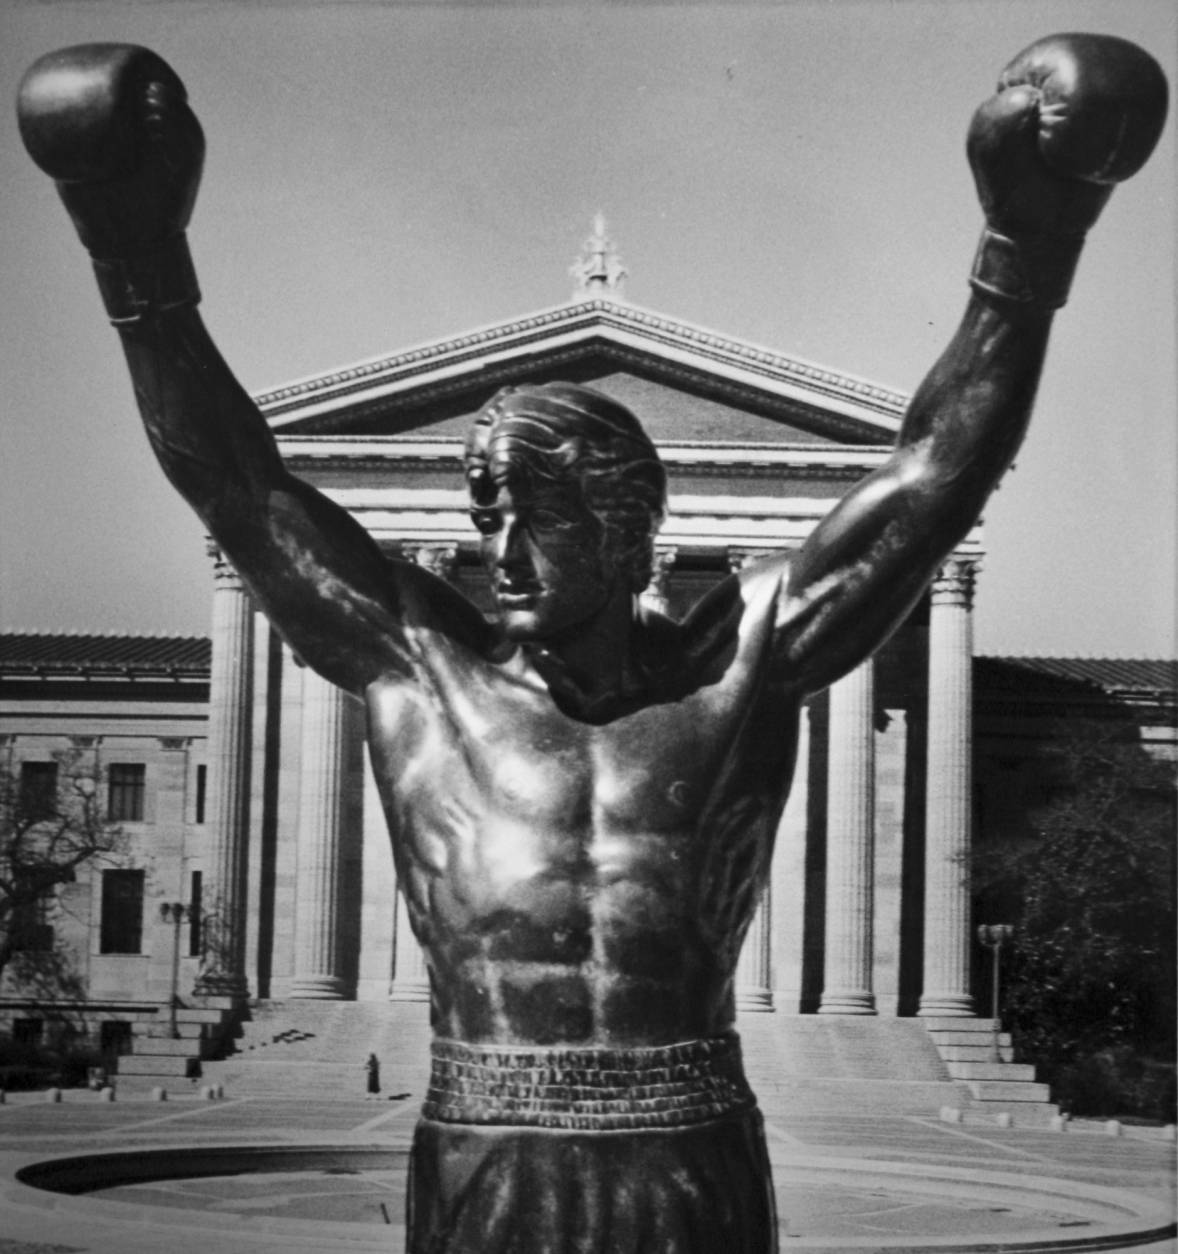 """In 1976, the boxing drama """"Rocky,"""" a United Artists release starring Sylvester Stallone as a journeyman fighter who's given the chance to face the heavyweight champion, premiered in New York.  (AP Photo/Amy Sancetta)"""